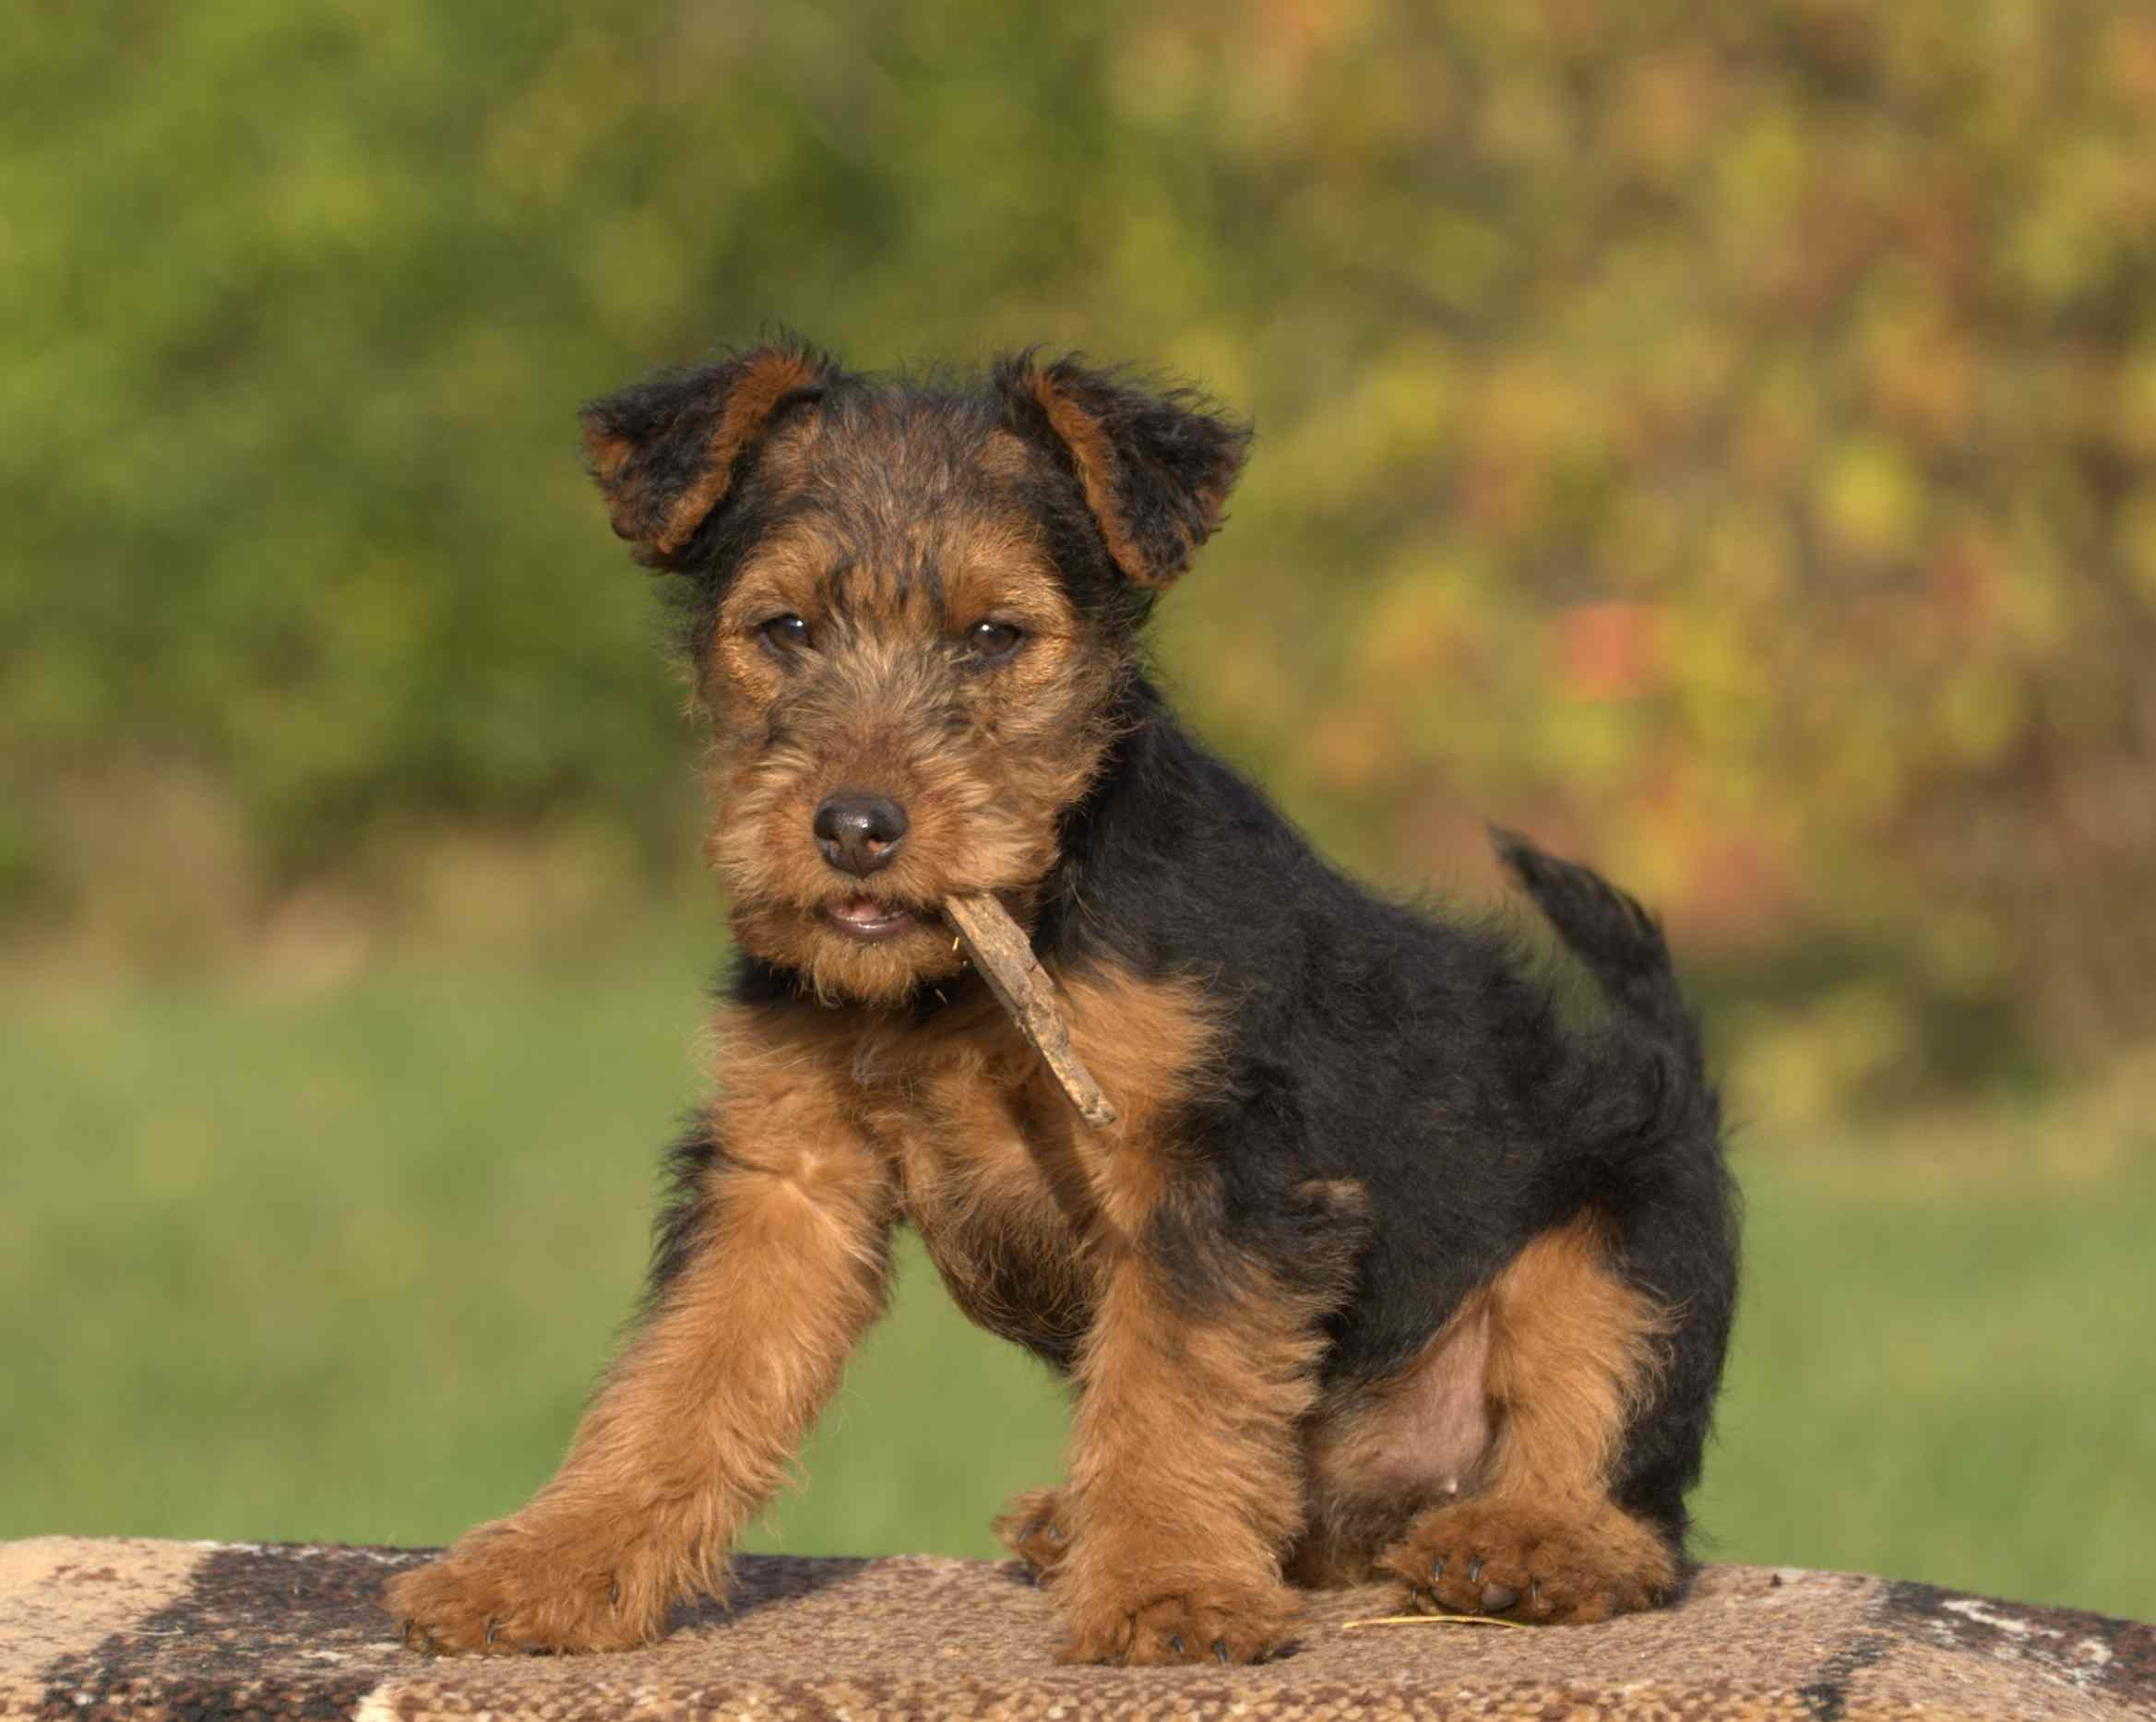 Puppy Welsh Terrier with chew